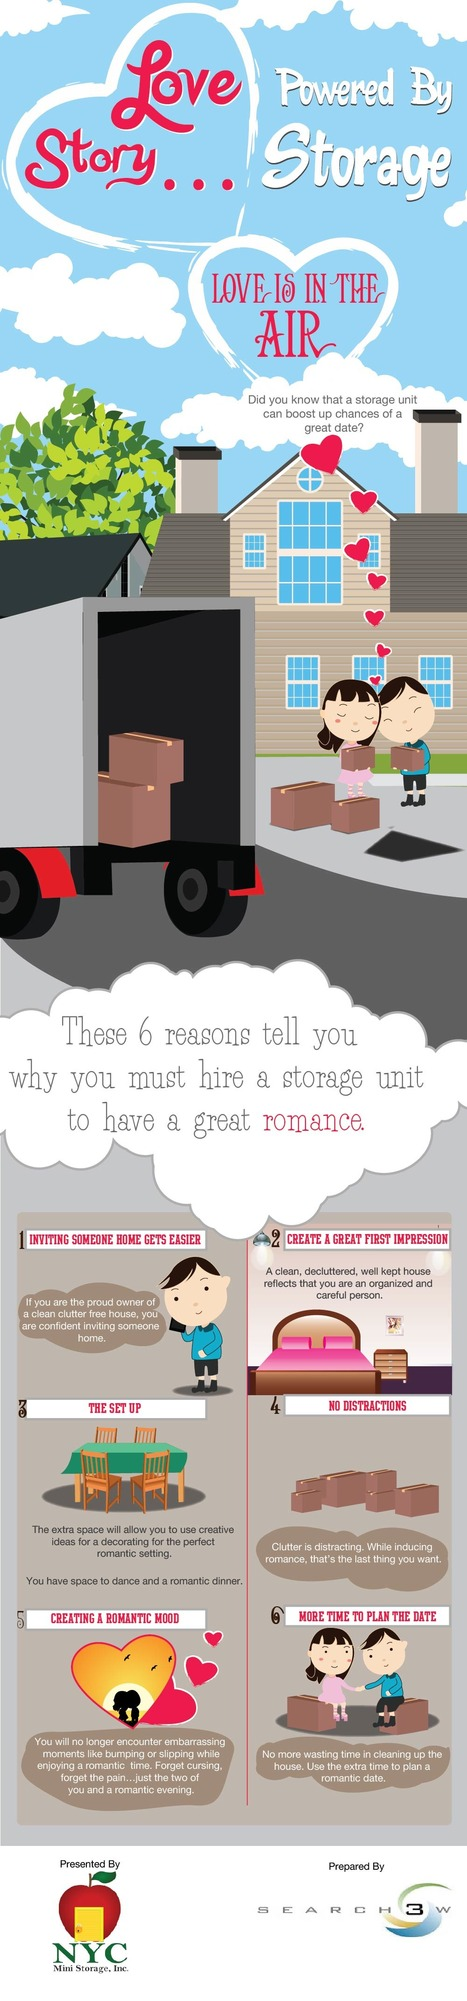 Love Story…Powered By Storage [Infographic | NYC MInistorage | Scoop.it